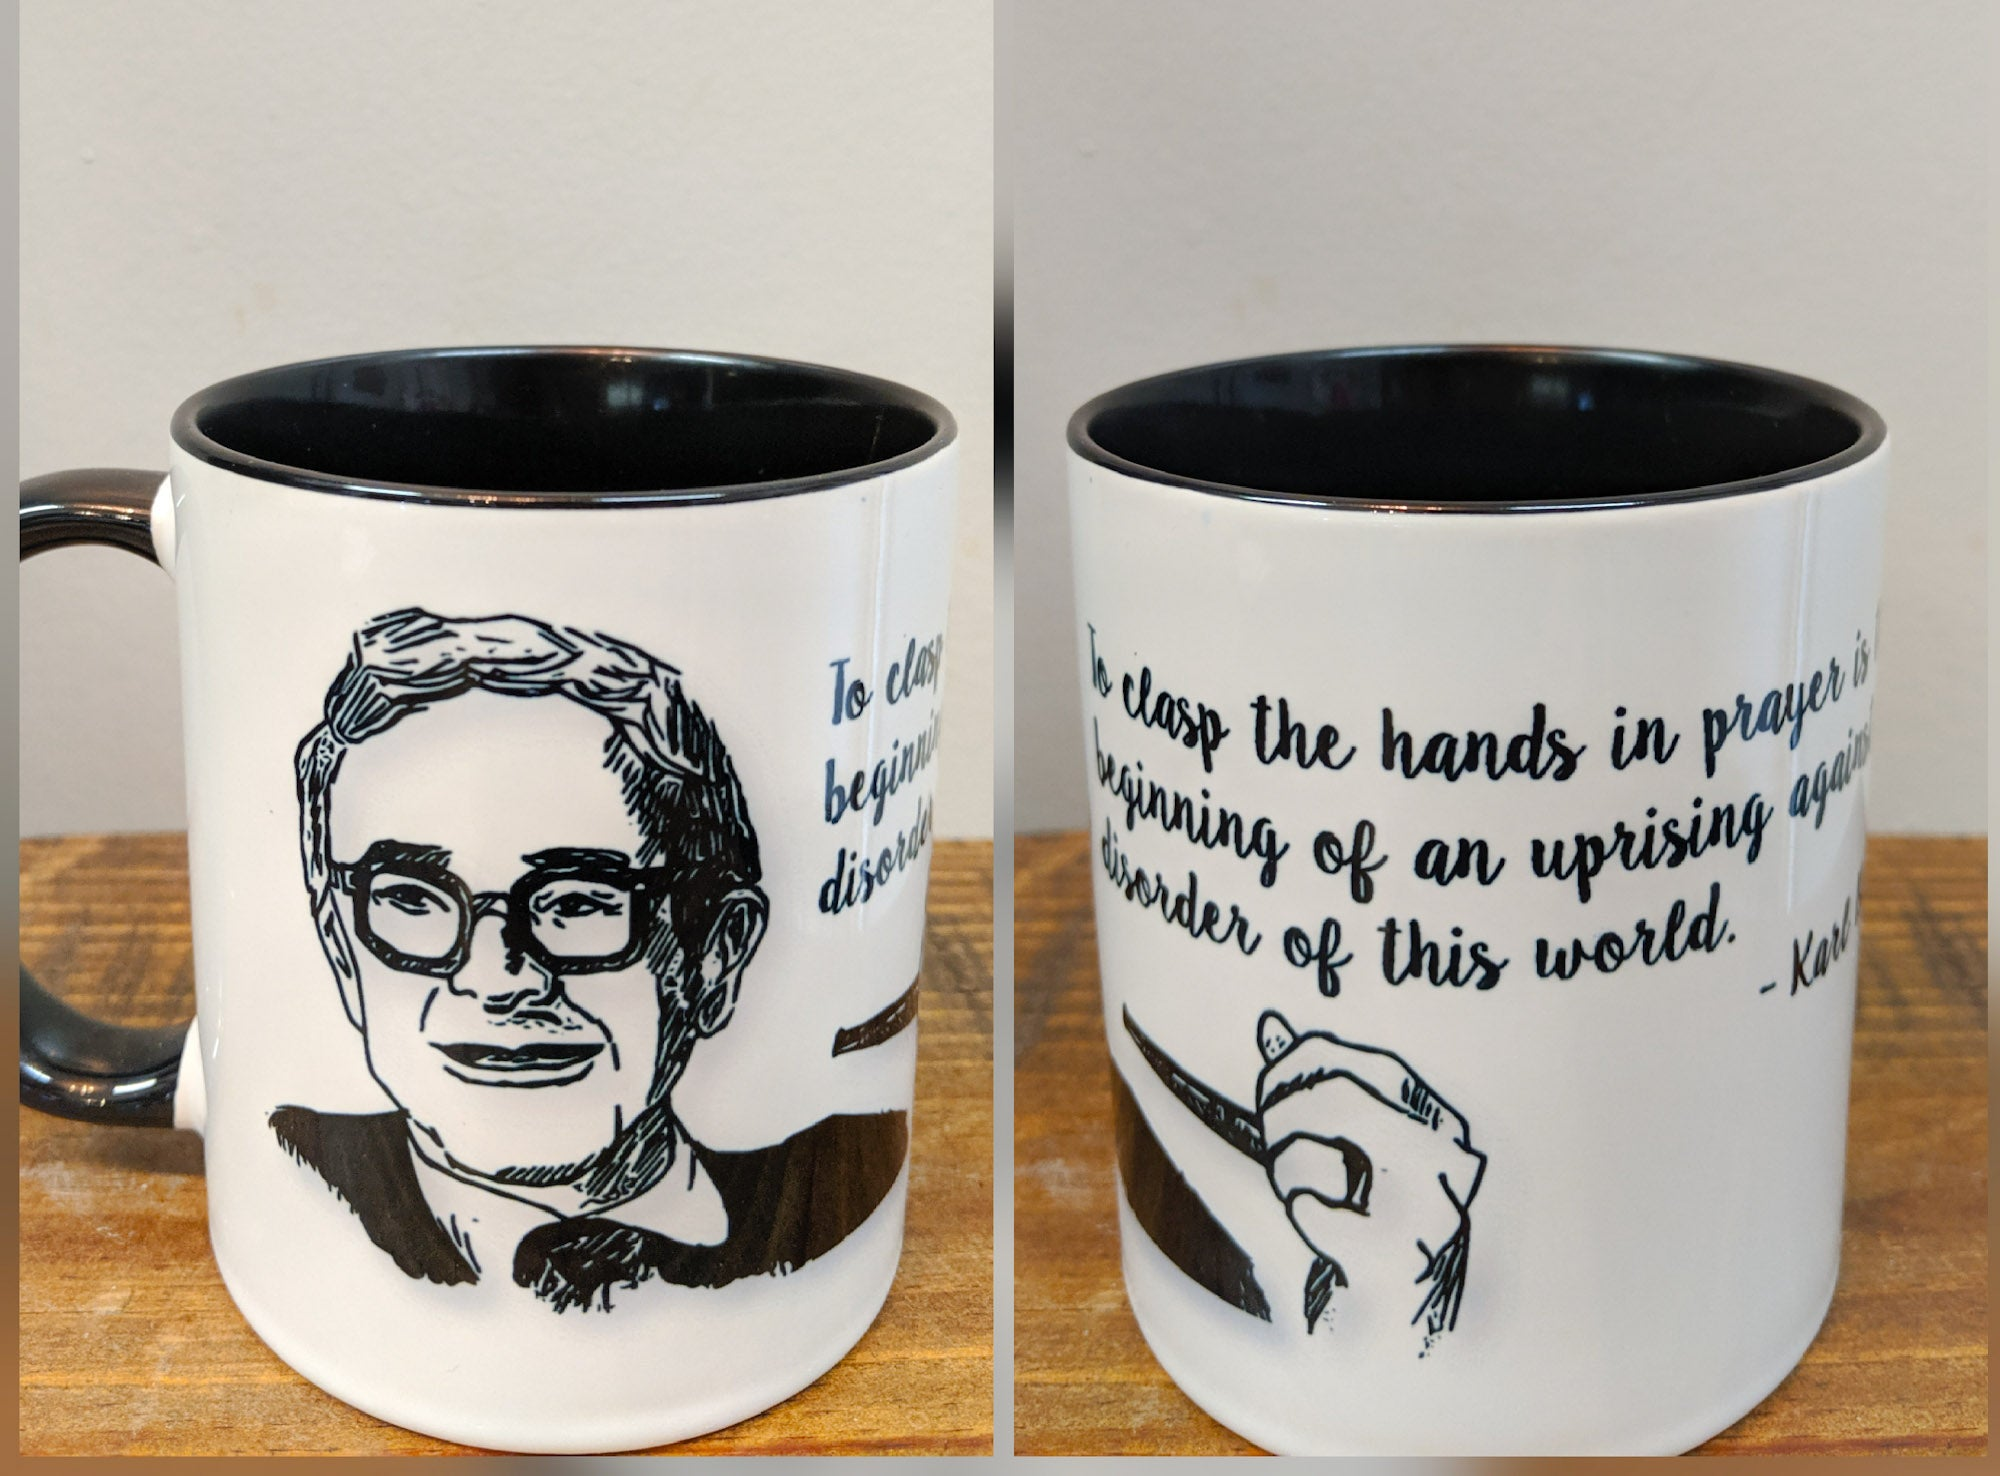 The Karl Barth Mug